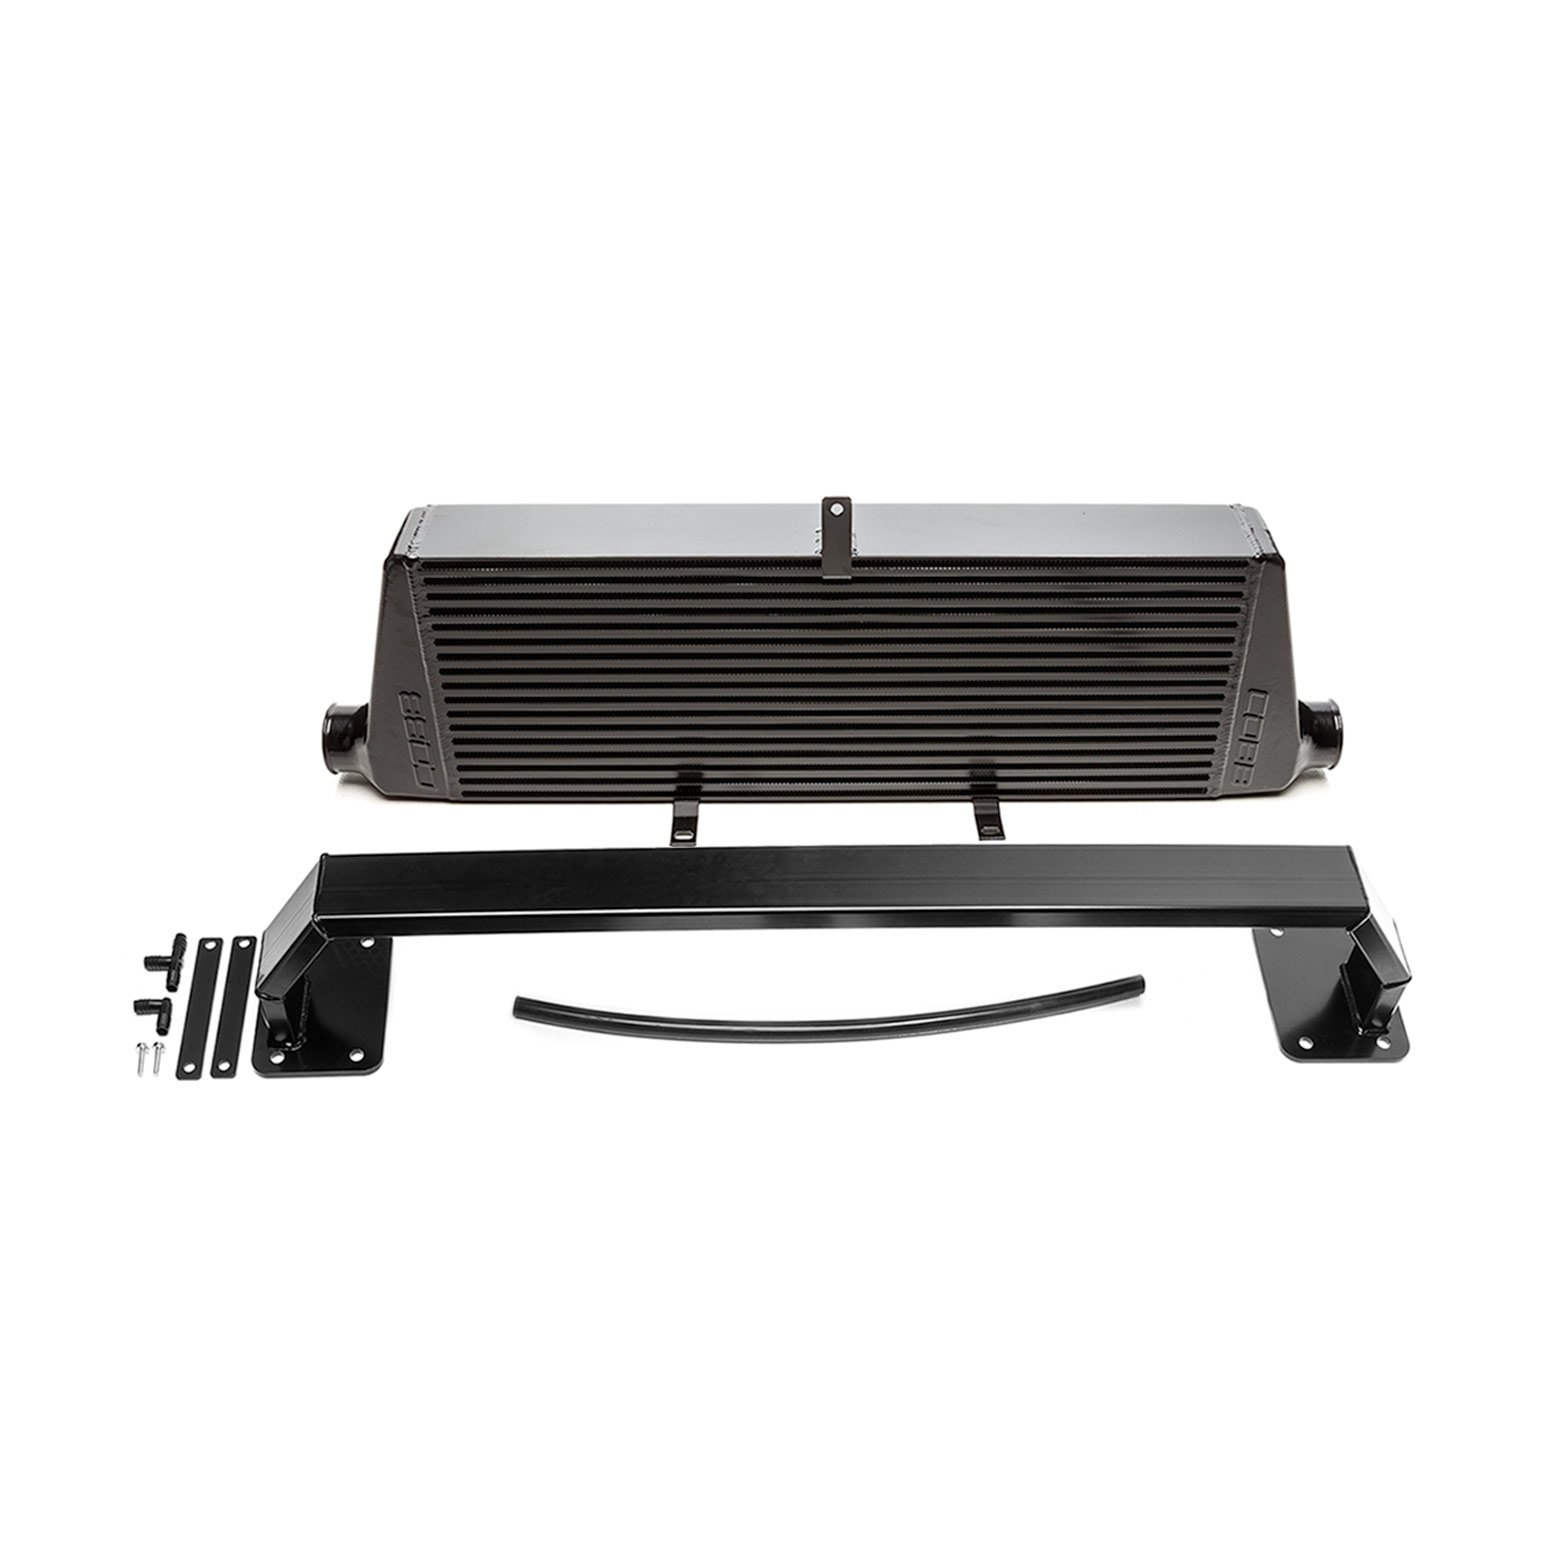 Subaru Front Mount Intercooler Kit (Black) STI 2011-2014